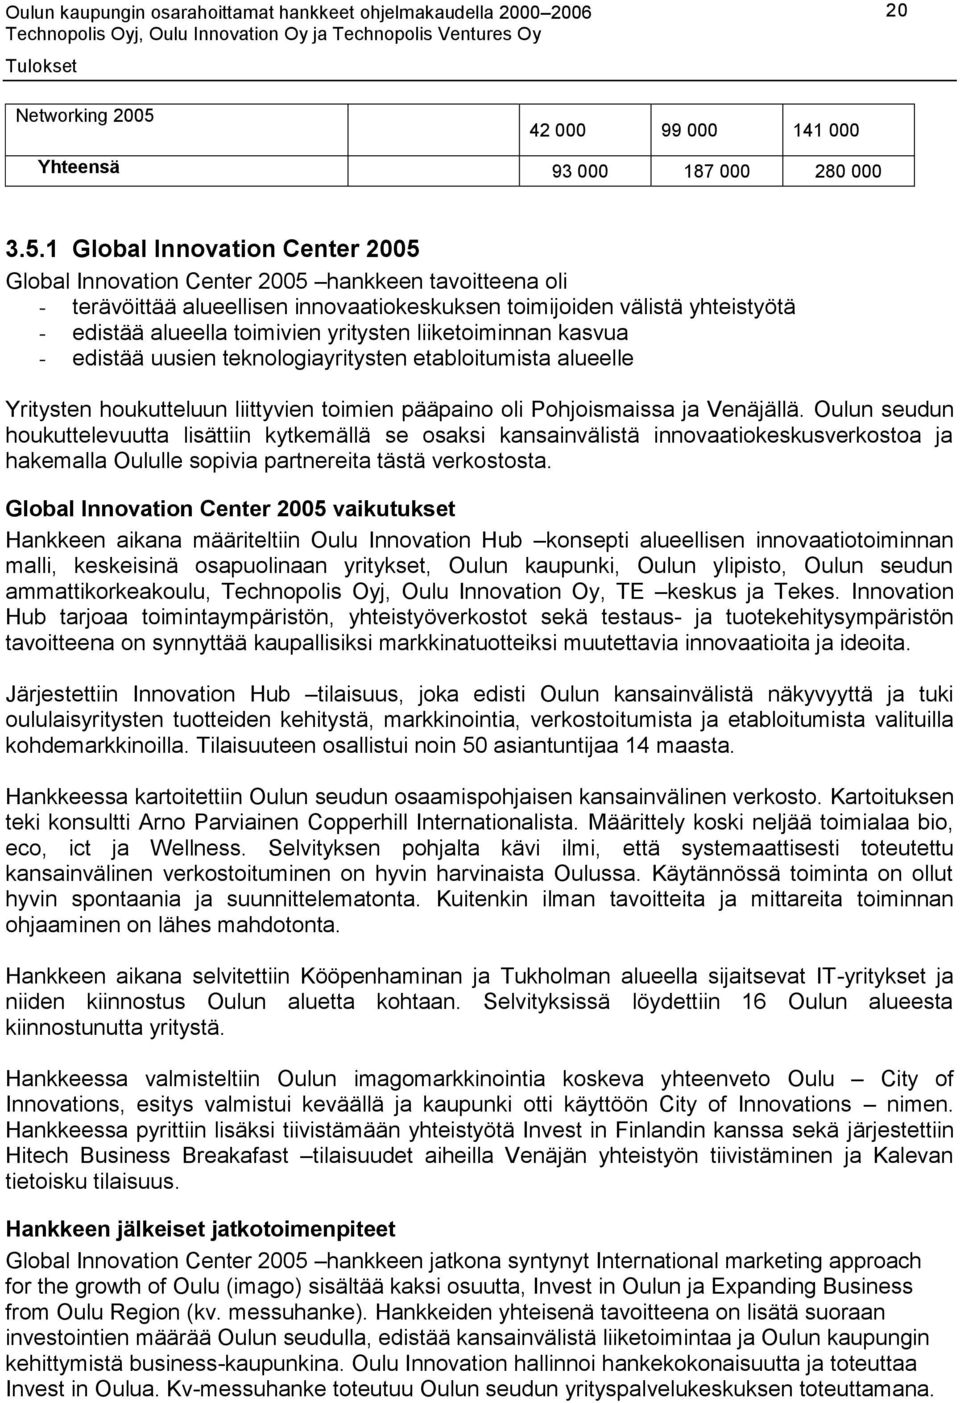 1 Global Innovation Center 2005 Global Innovation Center 2005 hankkeen tavoitteena oli - terävöittää alueellisen innovaatiokeskuksen toimijoiden välistä yhteistyötä - edistää alueella toimivien